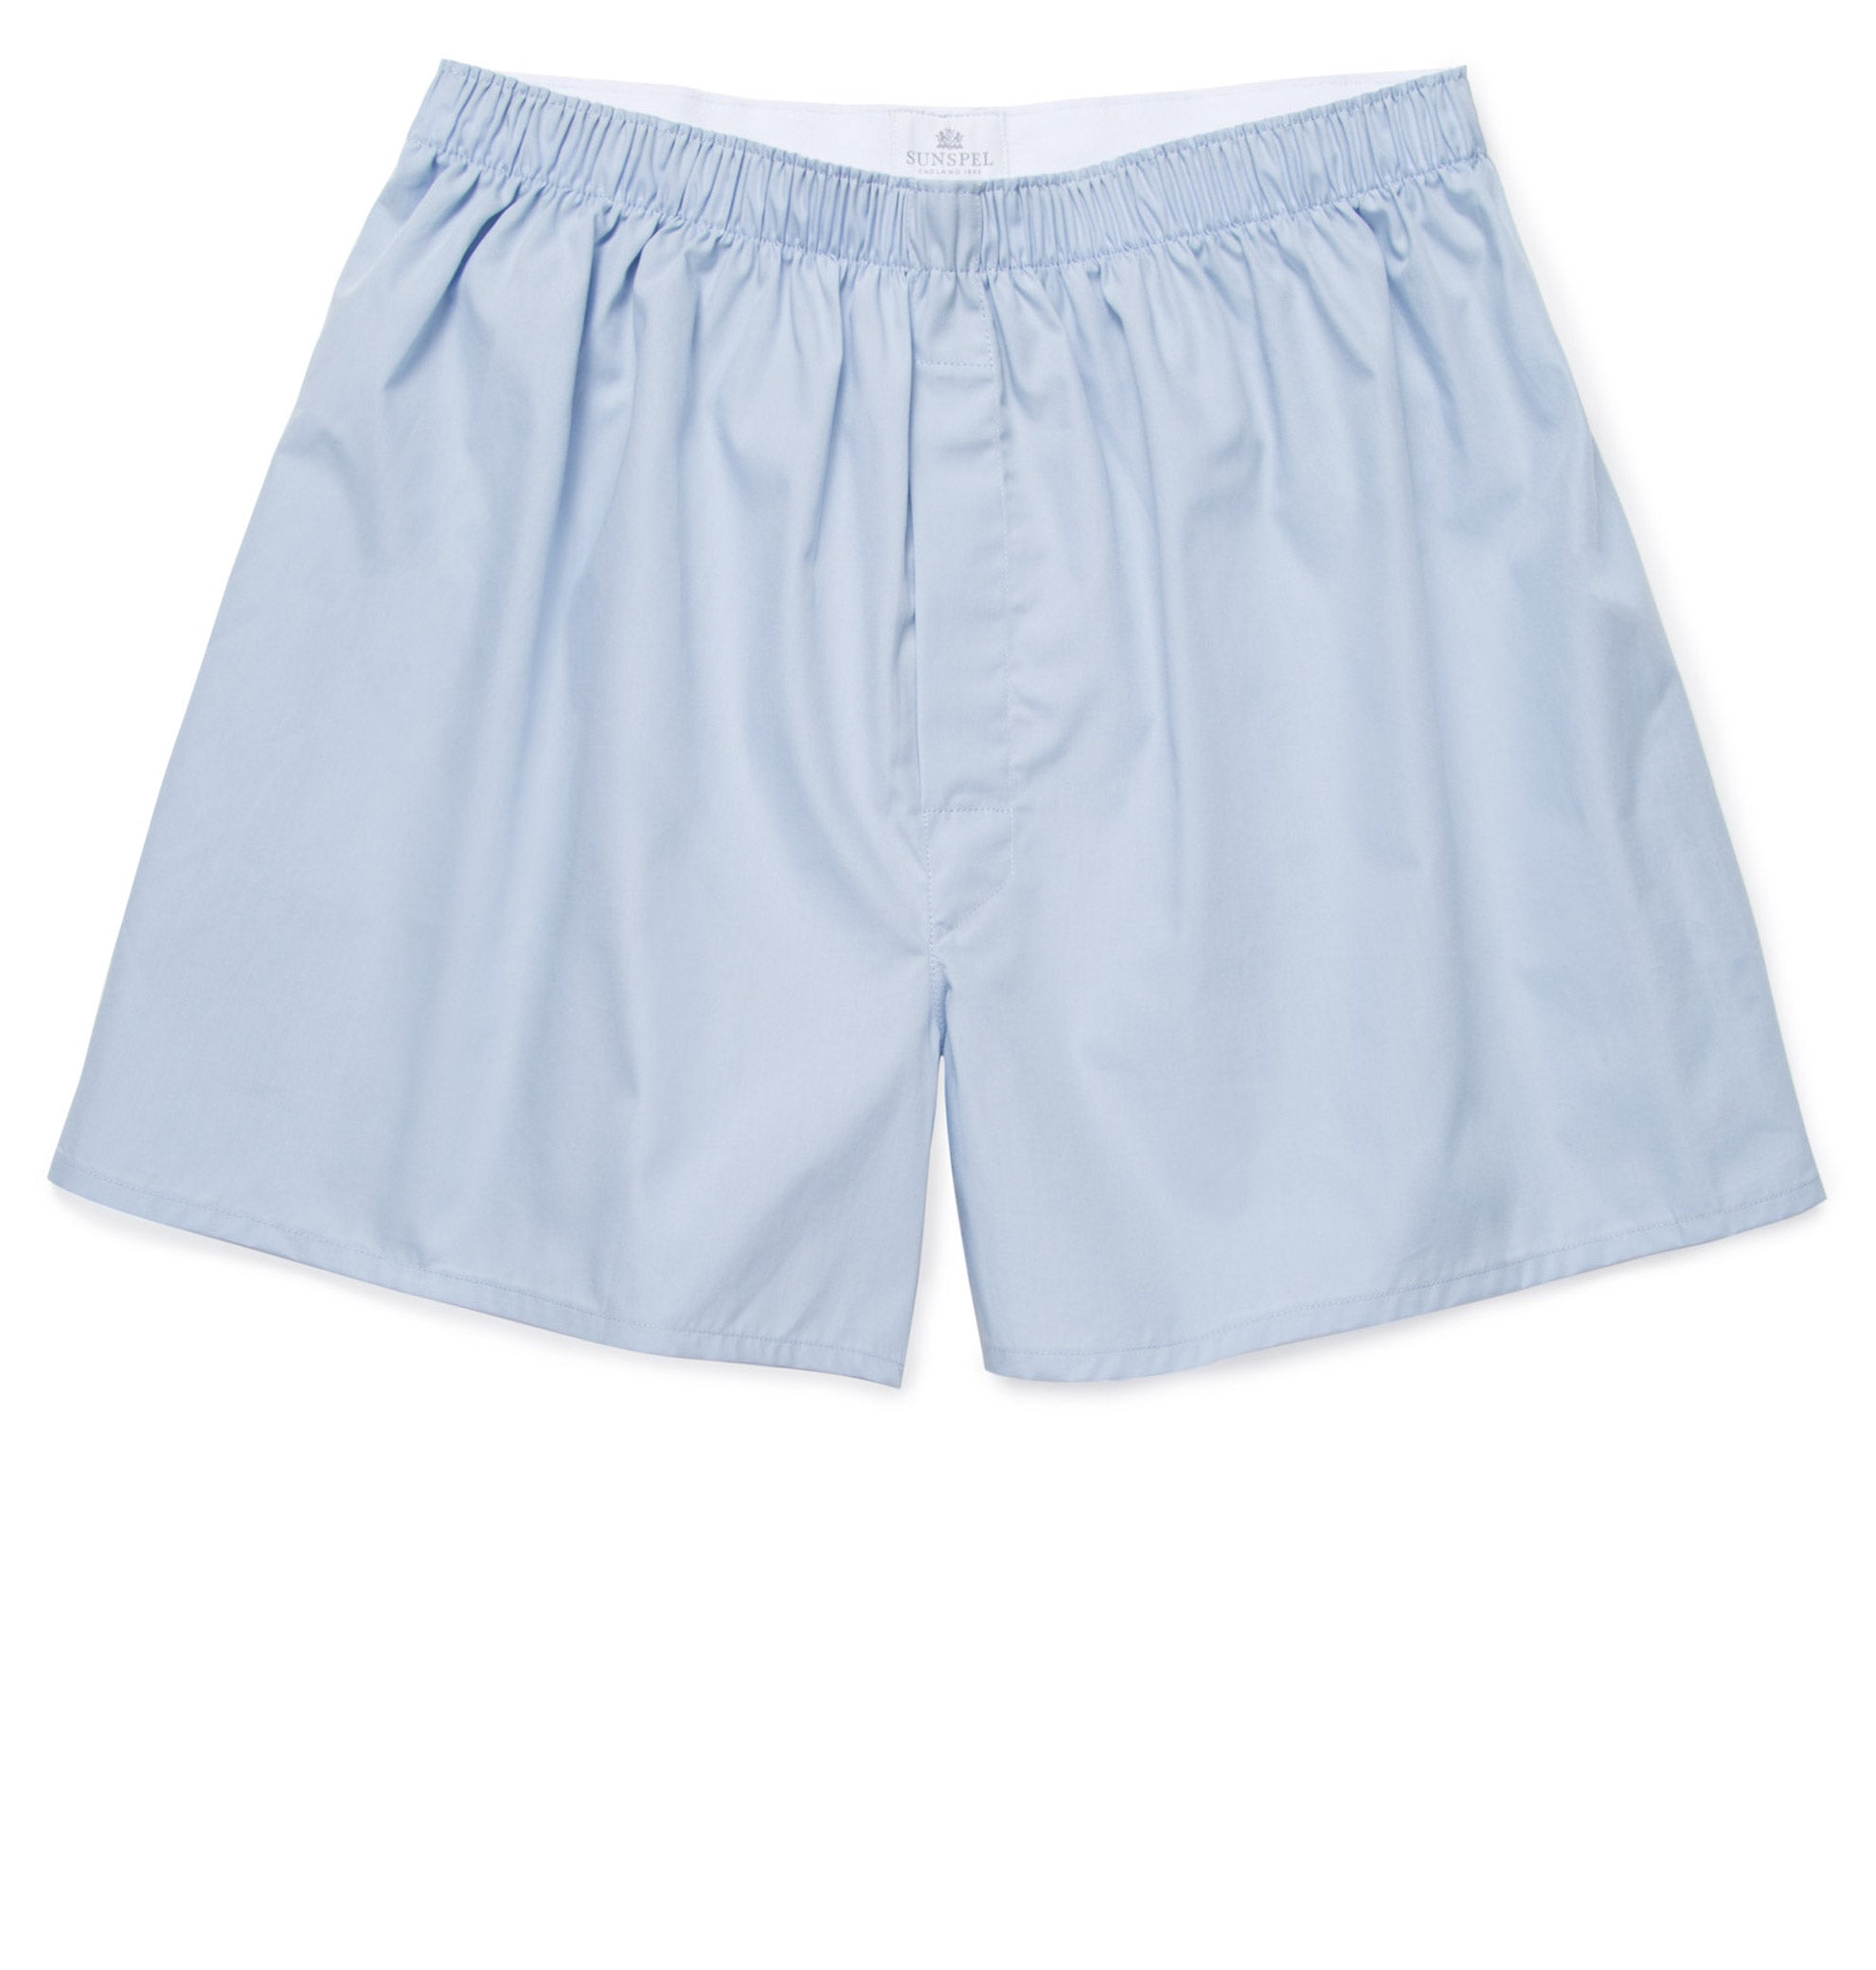 Sunspel-Classic-Boxer-Short-Plain-Blue